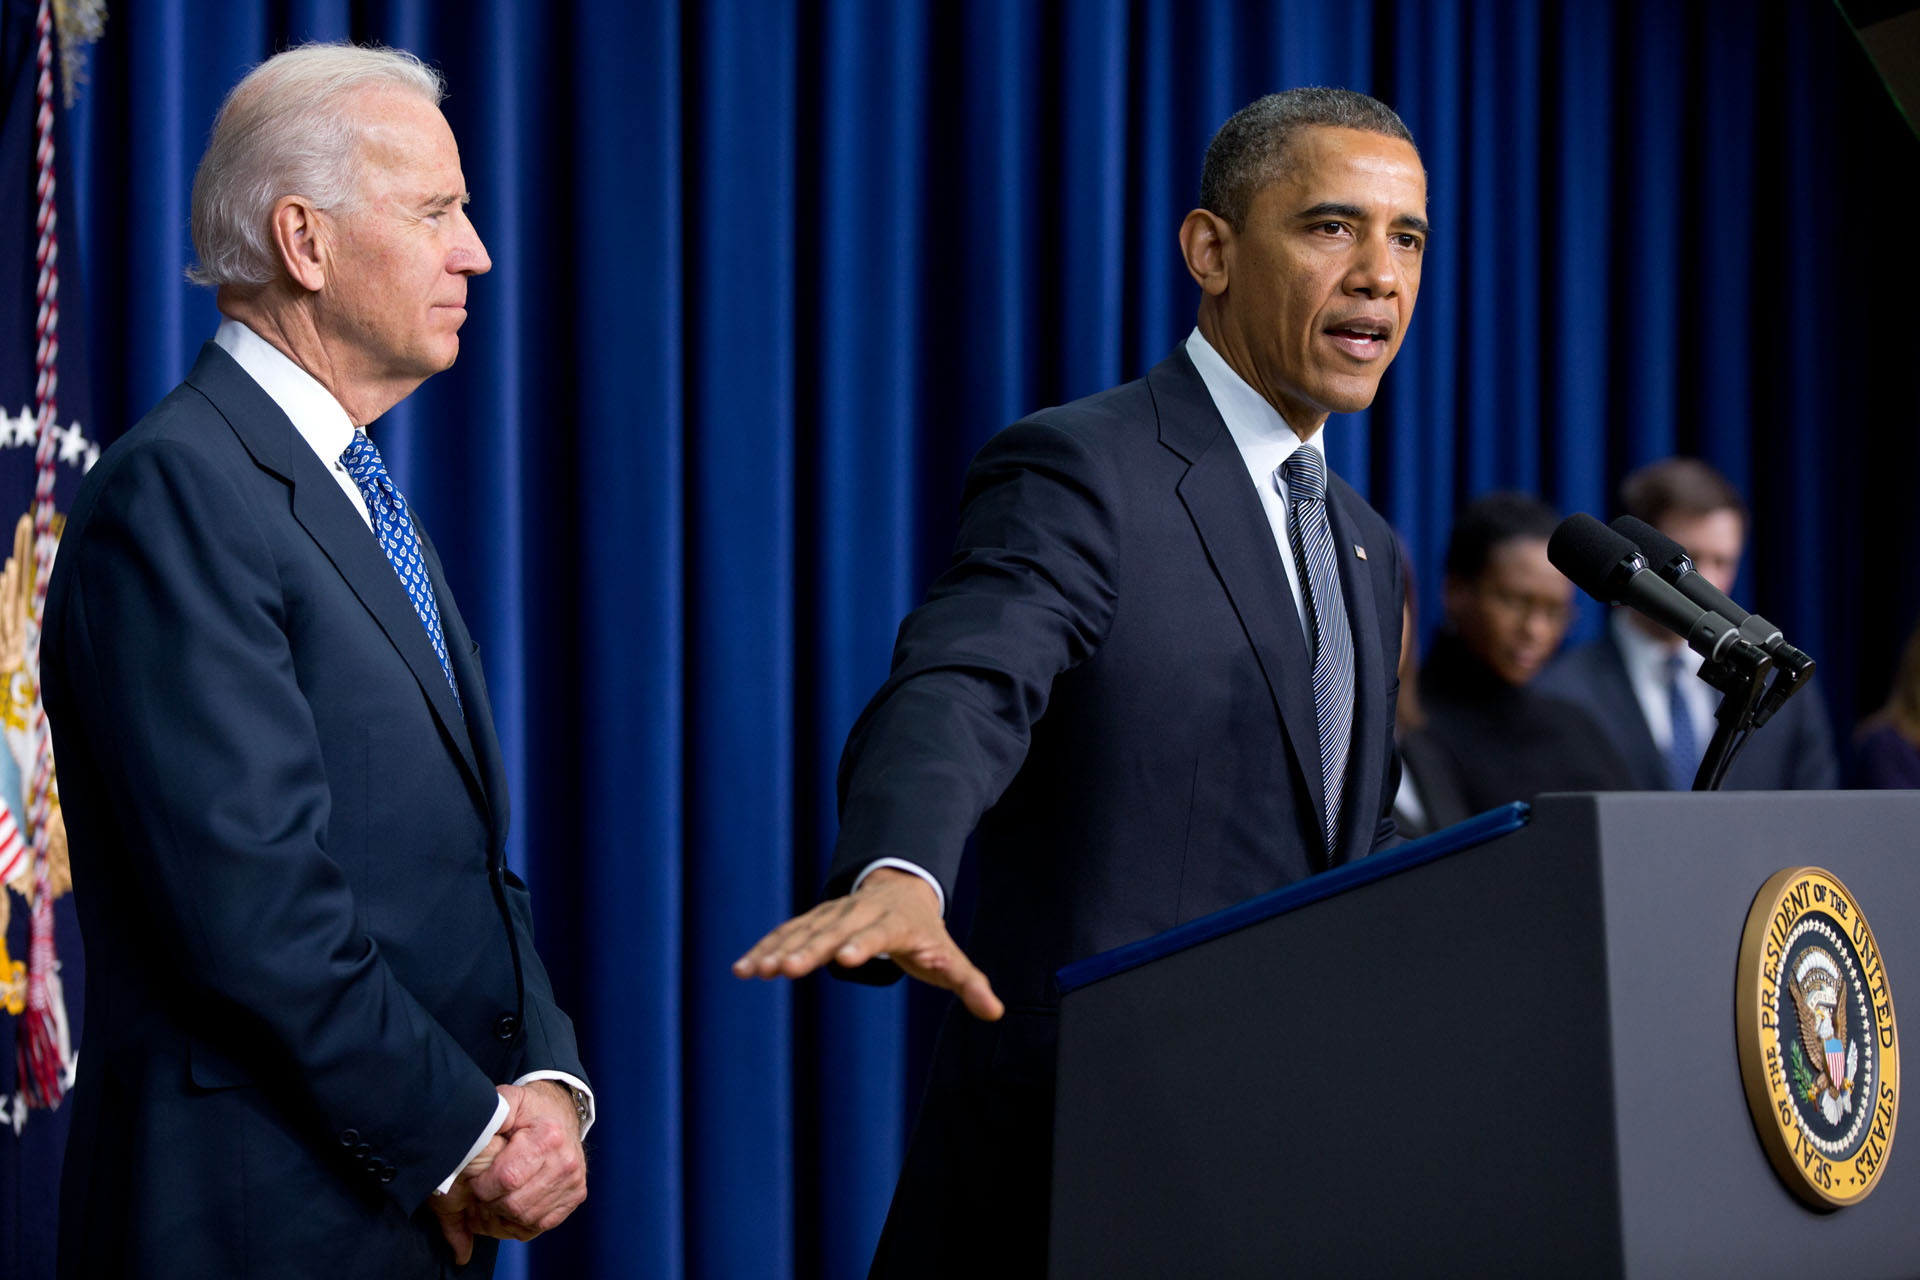 President Barack Obama, with Vice President Joe Biden, delivers remarks unveiling new gun control proposals Jan.16, 2013